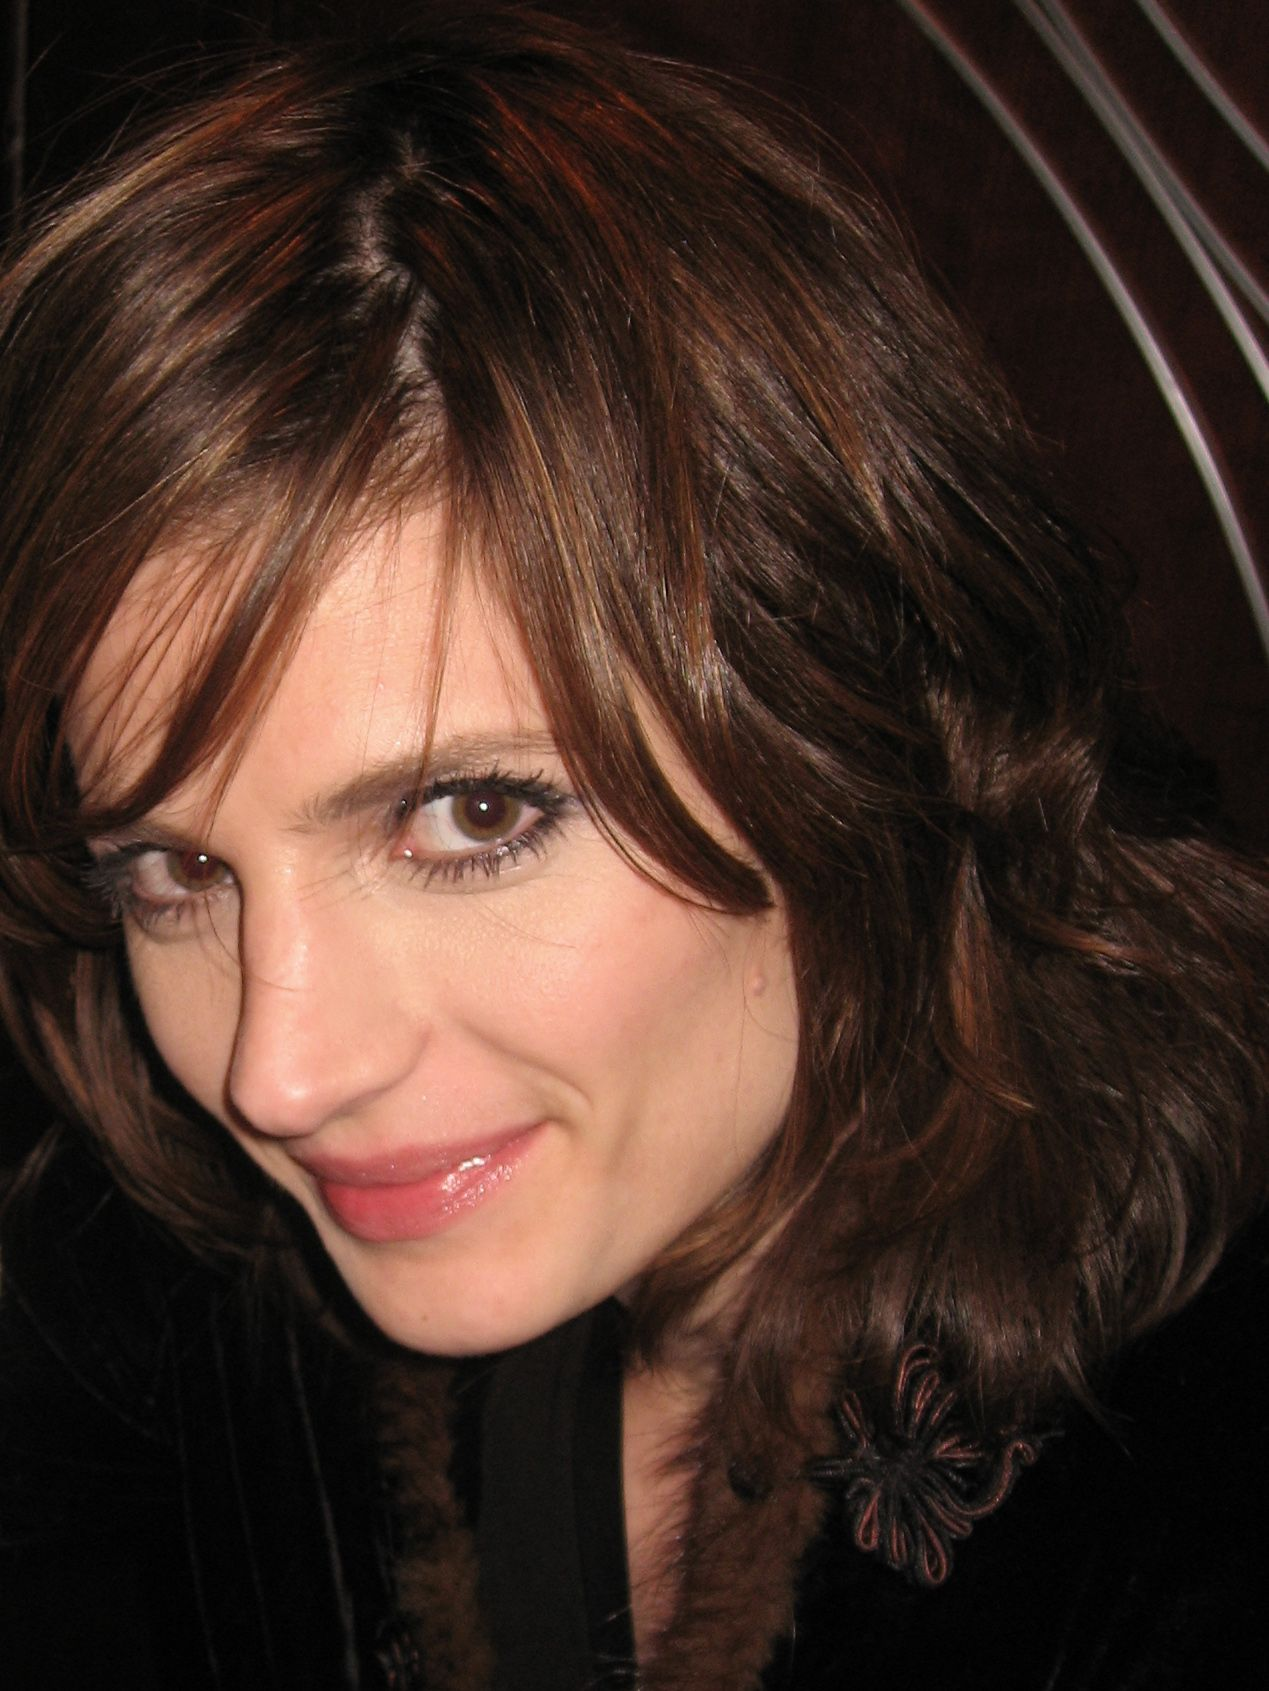 1000+ images about Stana Katic on Pinterest | Red carpets ...